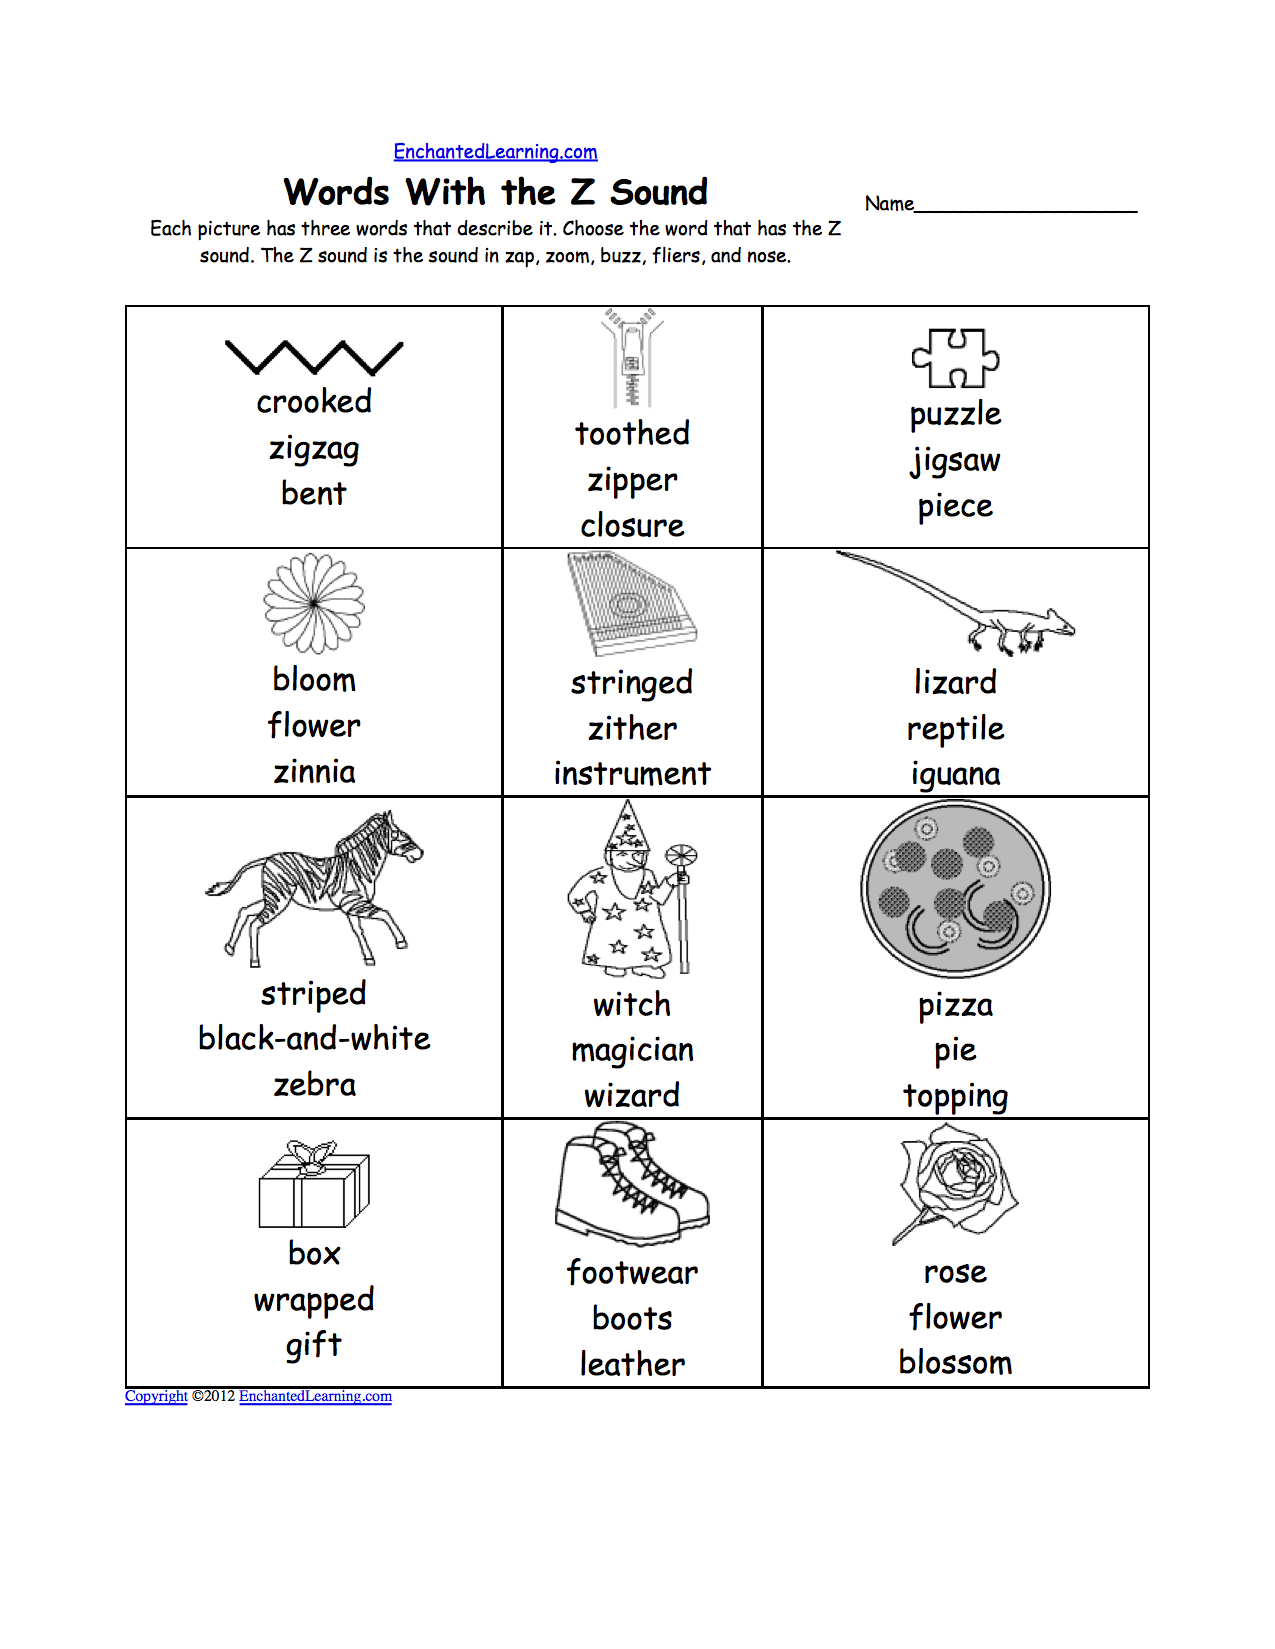 Aldiablosus  Wonderful Phonics Worksheets Multiple Choice Worksheets To Print  With Magnificent Phonics Worksheets Multiple Choice Worksheets To Print  Enchantedlearningcom With Astounding Free Printable Figurative Language Worksheets Also Plants We Eat Worksheet In Addition Writing  Step Equations Worksheet And  By  Multiplication Worksheets As Well As Possessive Adjective Worksheet Additionally Area And Perimeter Worksheets Grade  From Enchantedlearningcom With Aldiablosus  Magnificent Phonics Worksheets Multiple Choice Worksheets To Print  With Astounding Phonics Worksheets Multiple Choice Worksheets To Print  Enchantedlearningcom And Wonderful Free Printable Figurative Language Worksheets Also Plants We Eat Worksheet In Addition Writing  Step Equations Worksheet From Enchantedlearningcom